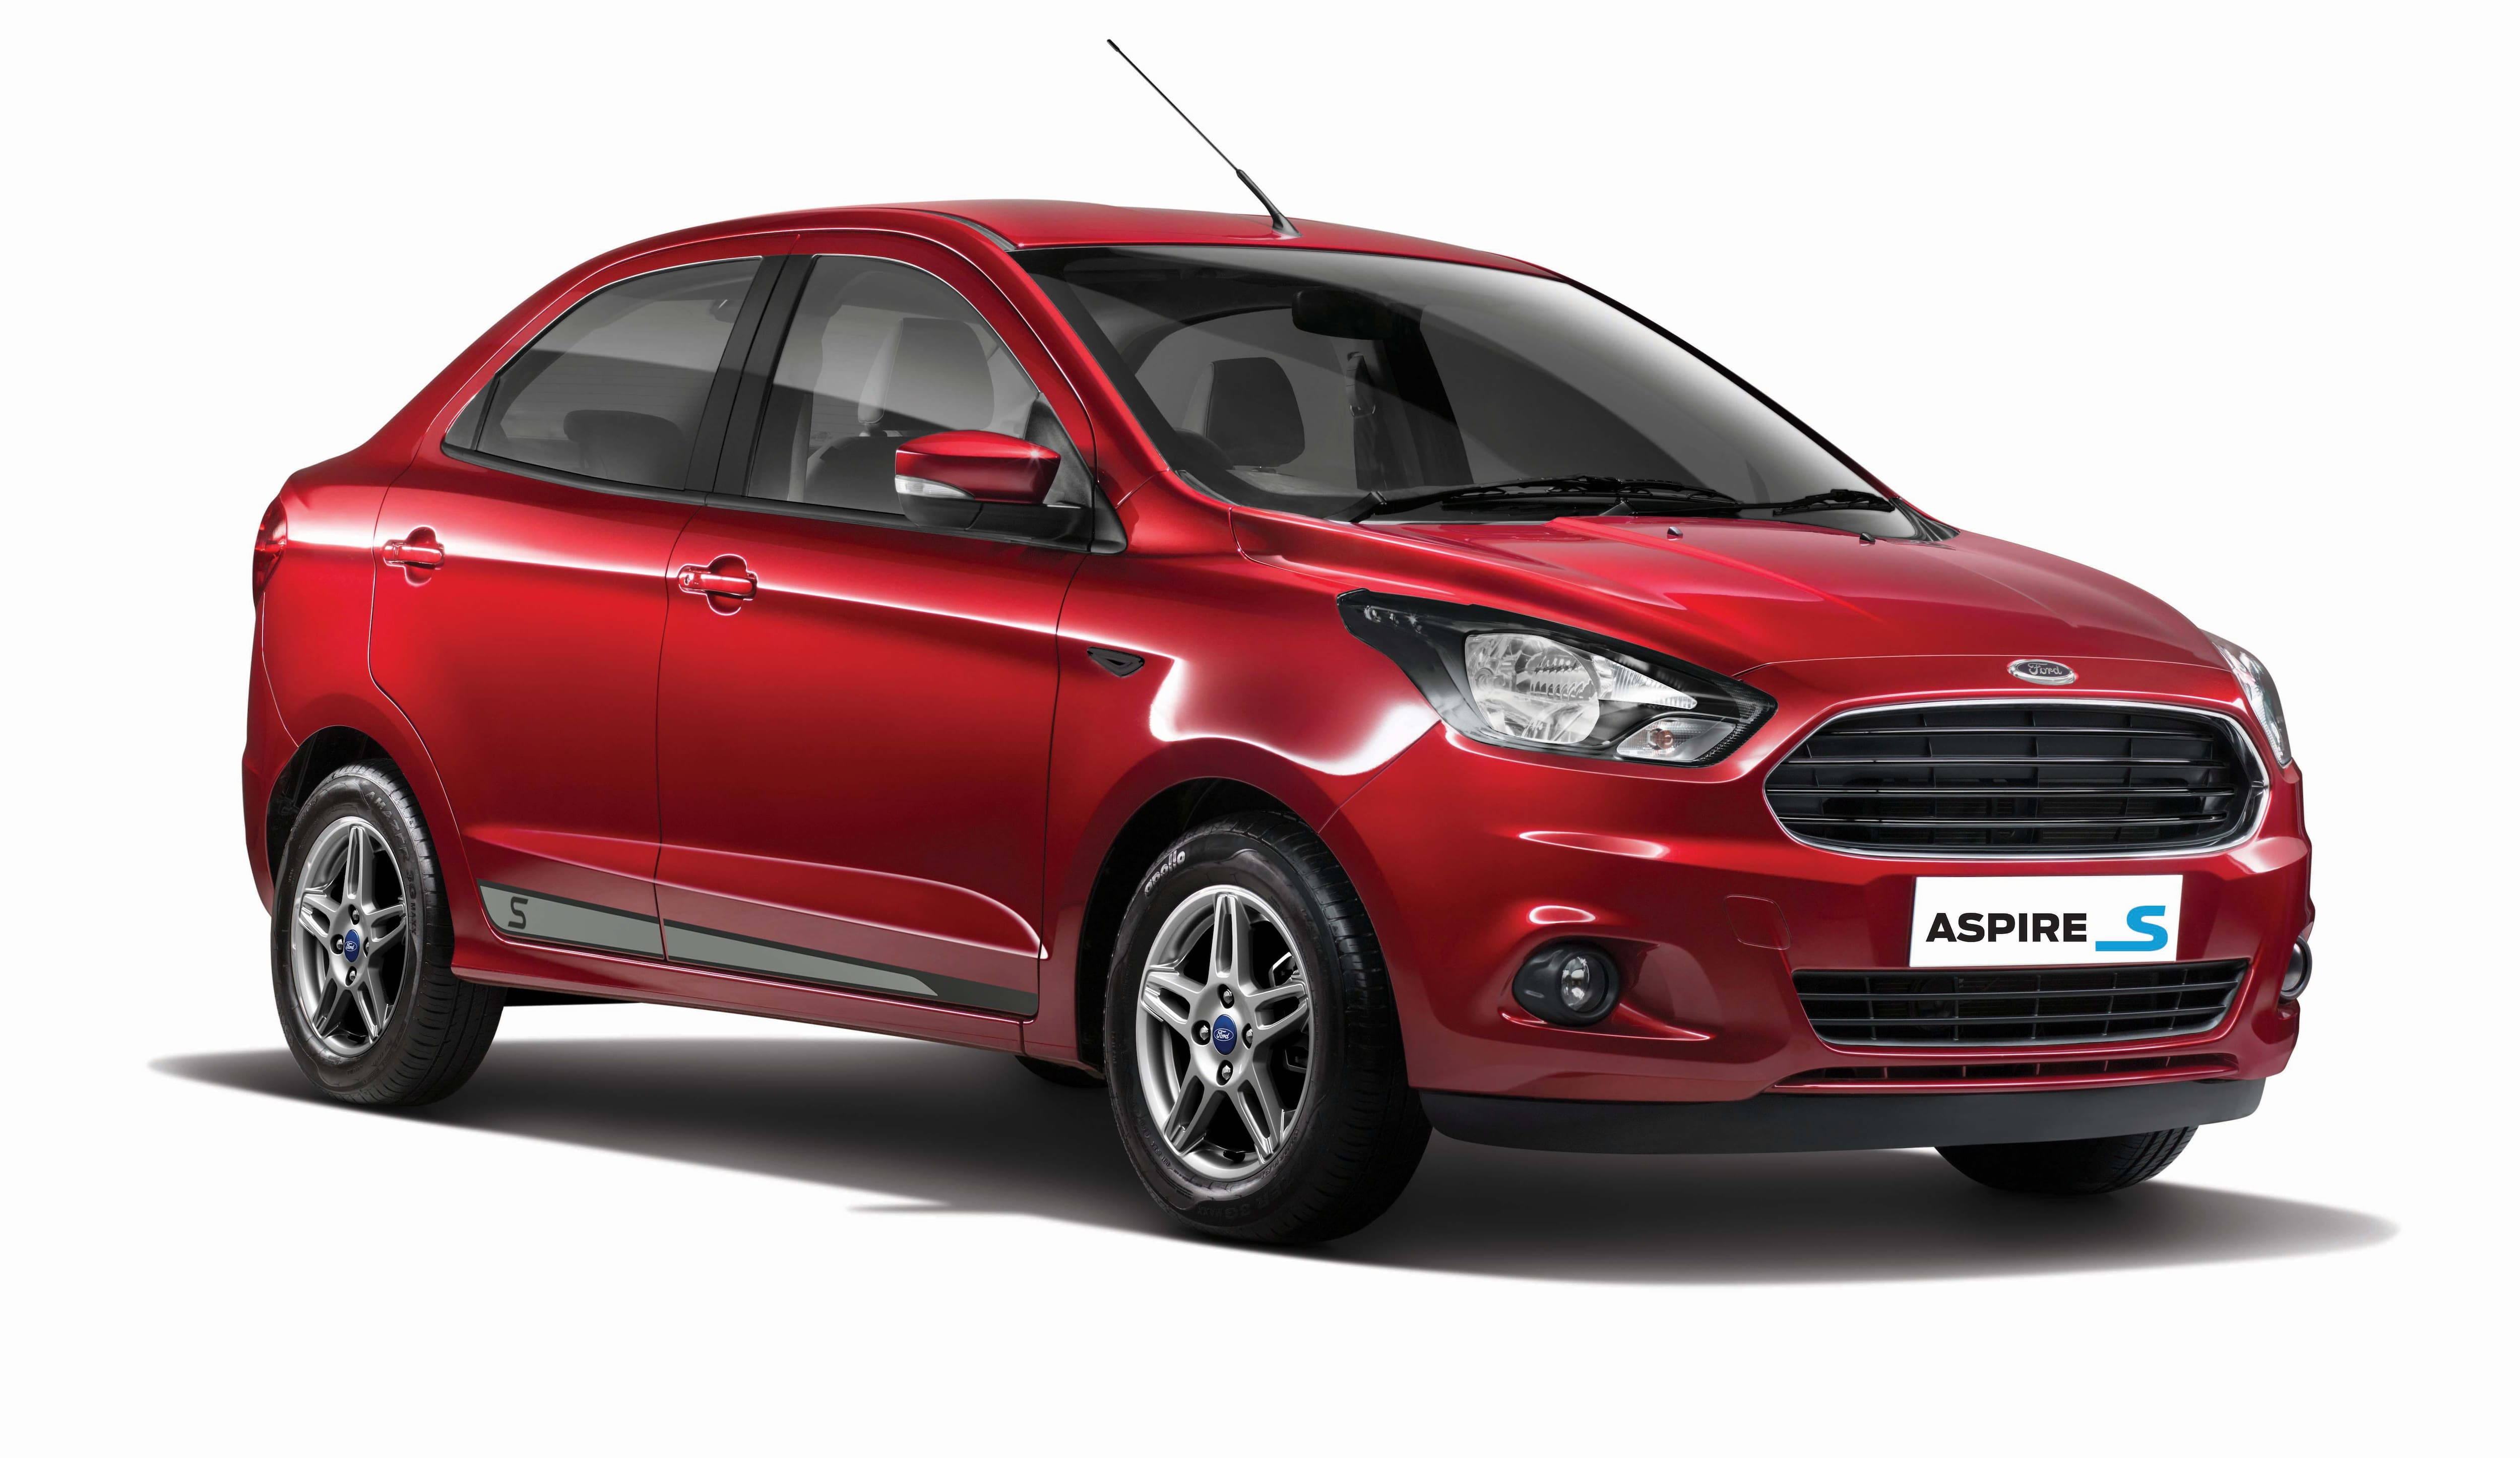 Ford Drives in New Aspire Priced at Rs 5.55 Lakh